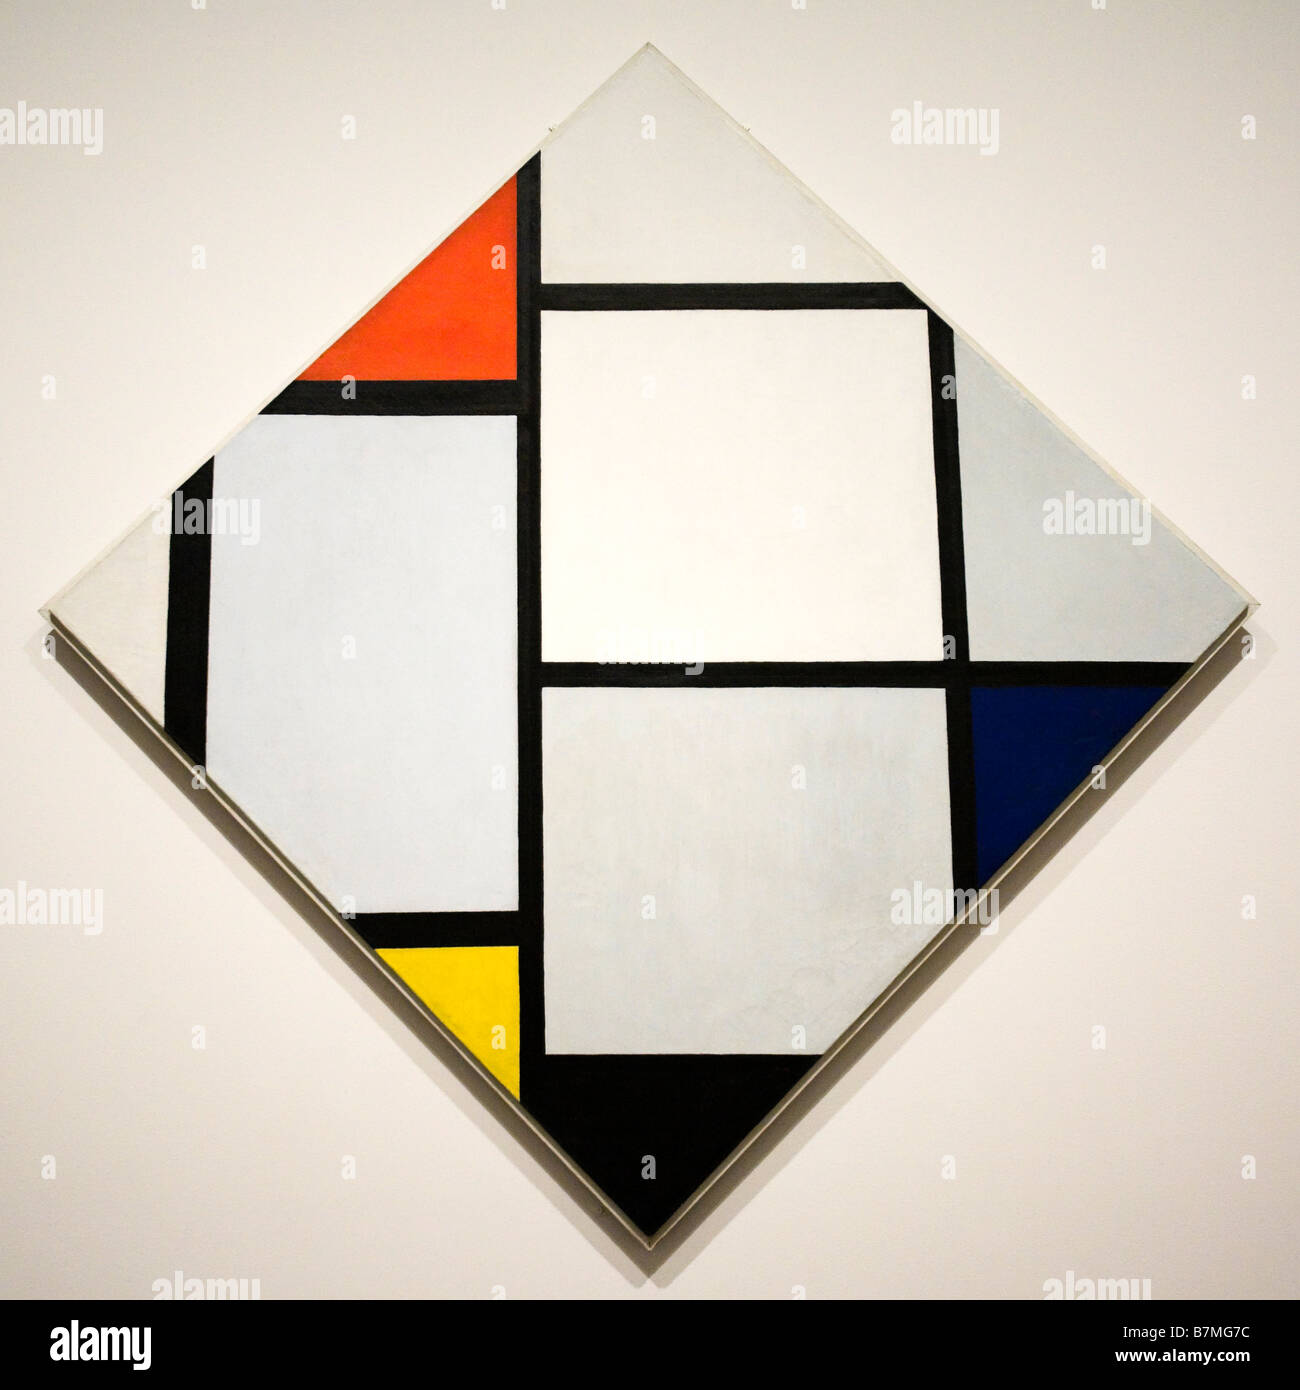 'Tableau No. IV; Lozenge Composition with Red, Gray, Blue, Yellow, and Black' by Piet Mondrian, 1924 - Stock Image